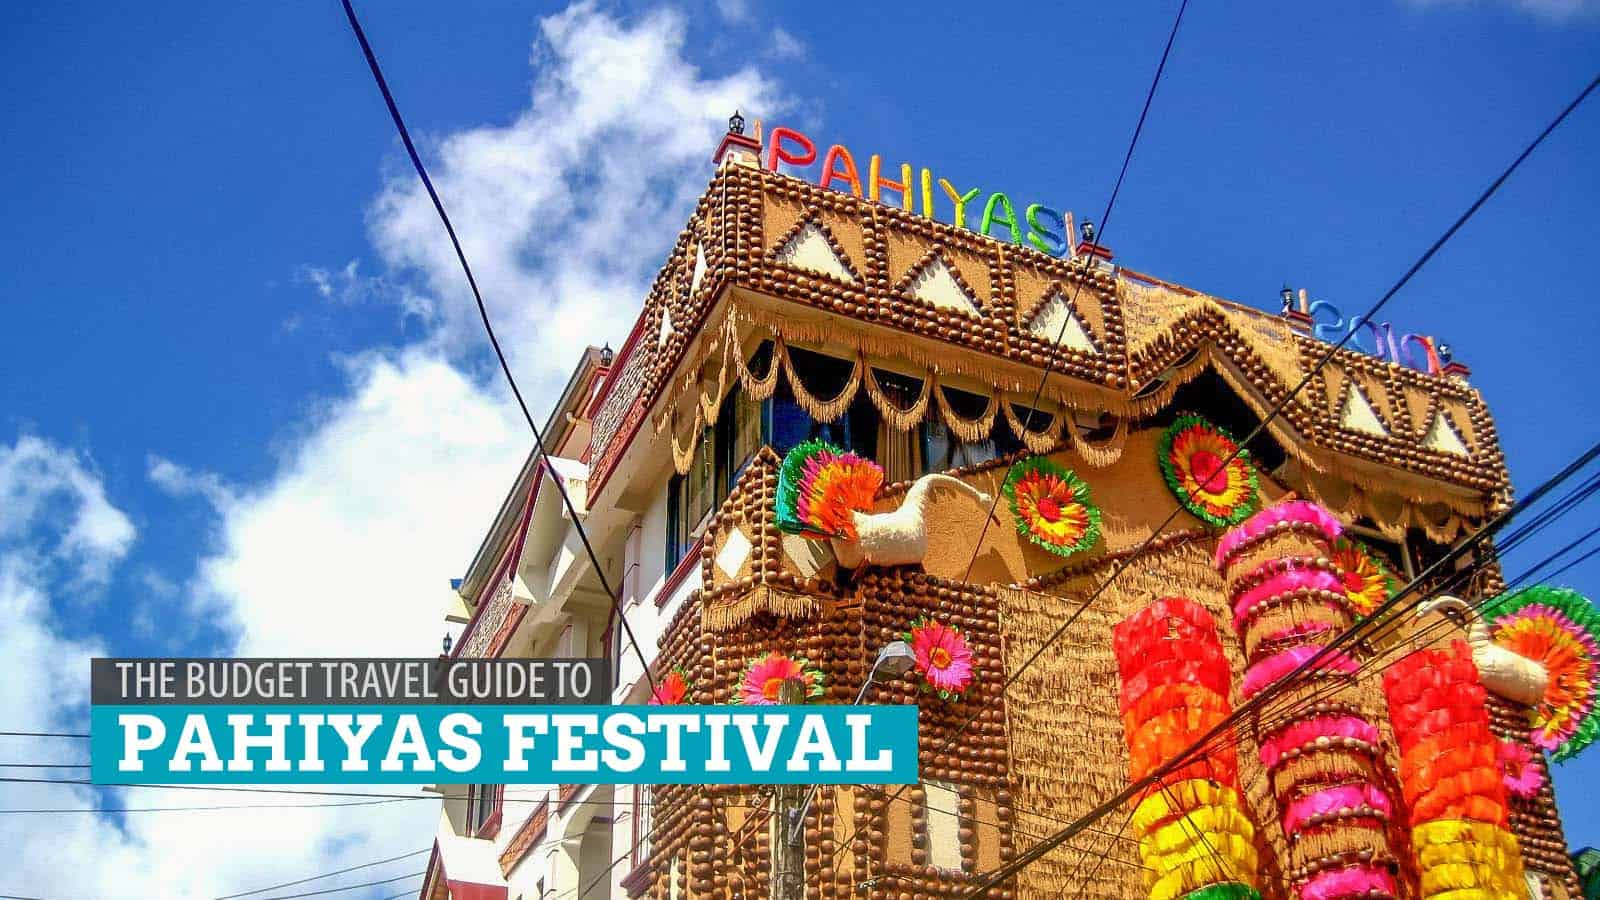 The Budget Travel Guide to Pahiyas Festival in Lucban